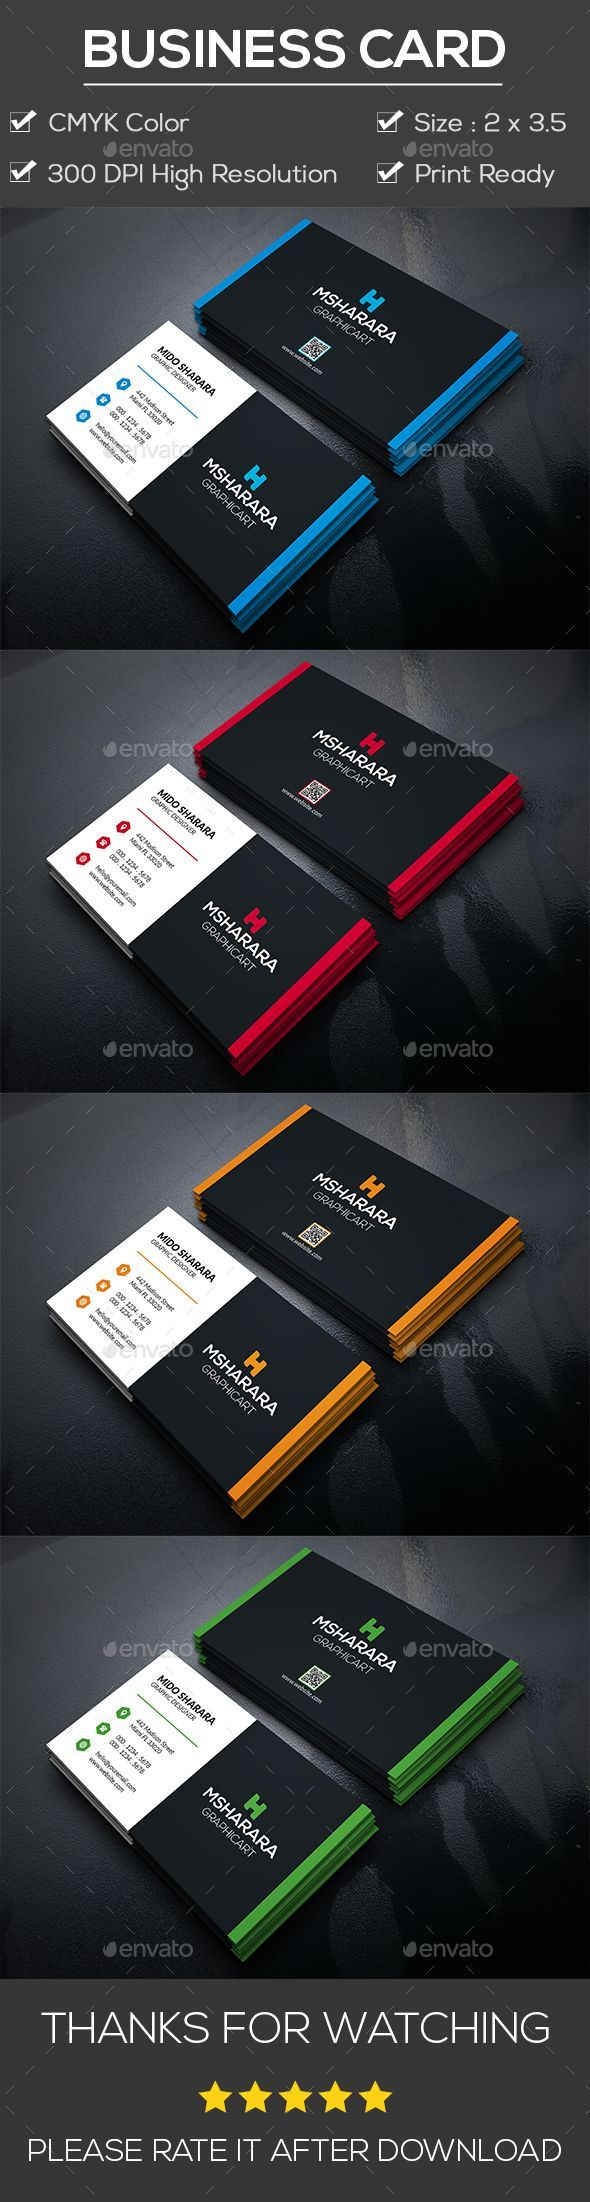 45 best 2018\'s Corporate Business Card Template\'s images on ...